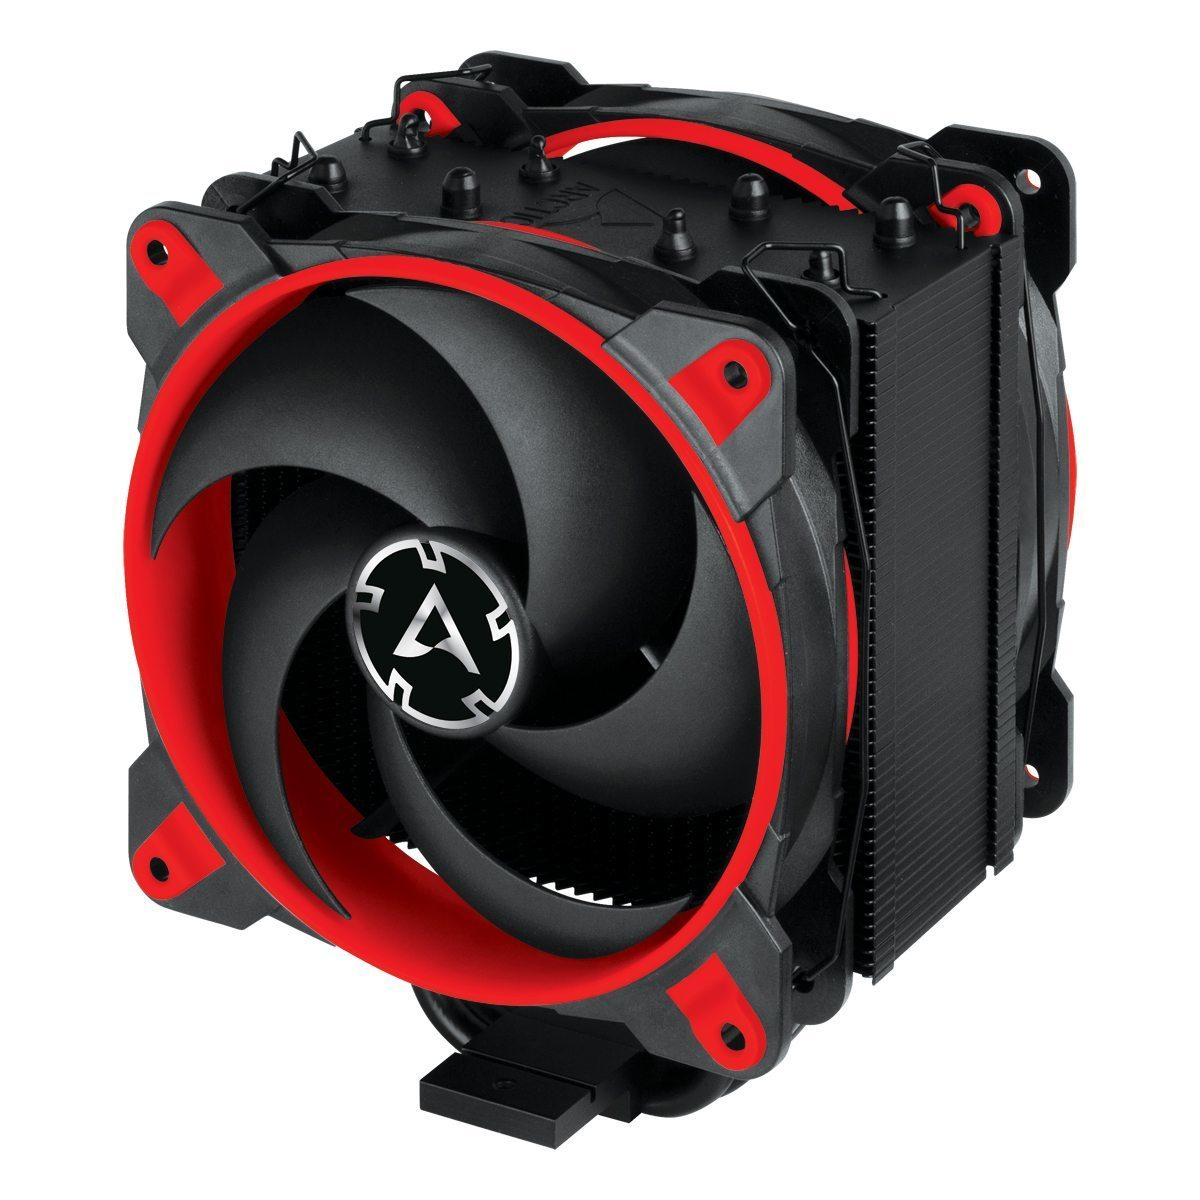 Freezer 34 eSports DUO - Red - LGA2066/LGA2011/LGA1151/AM4